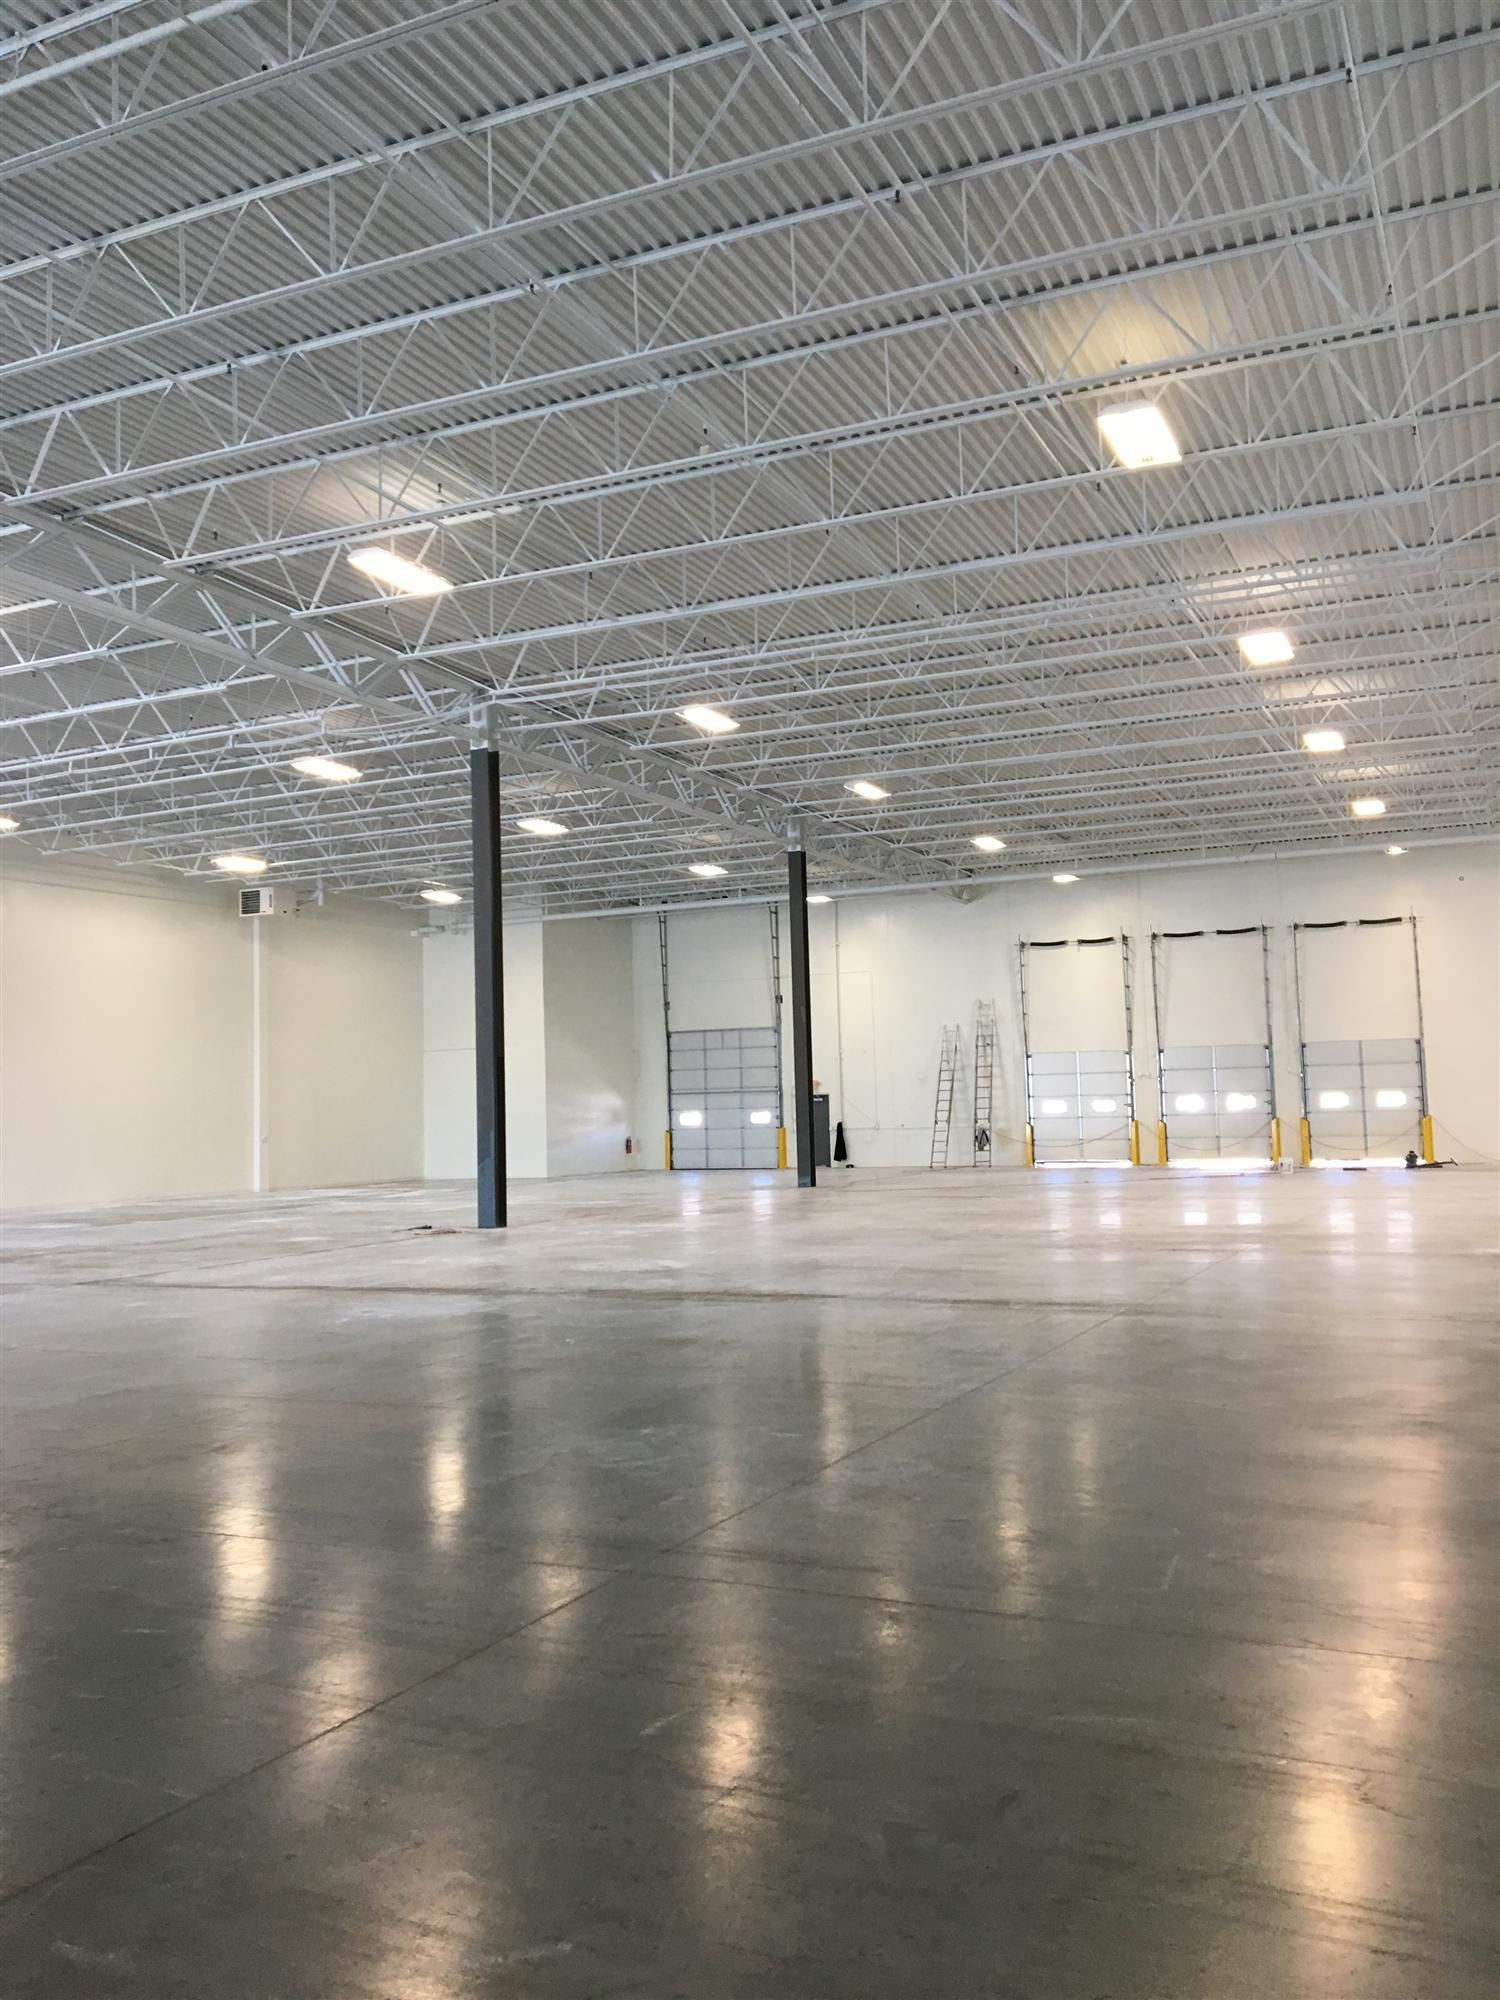 Industrial painting contractors completed the interior of this industrial building in Racine WI